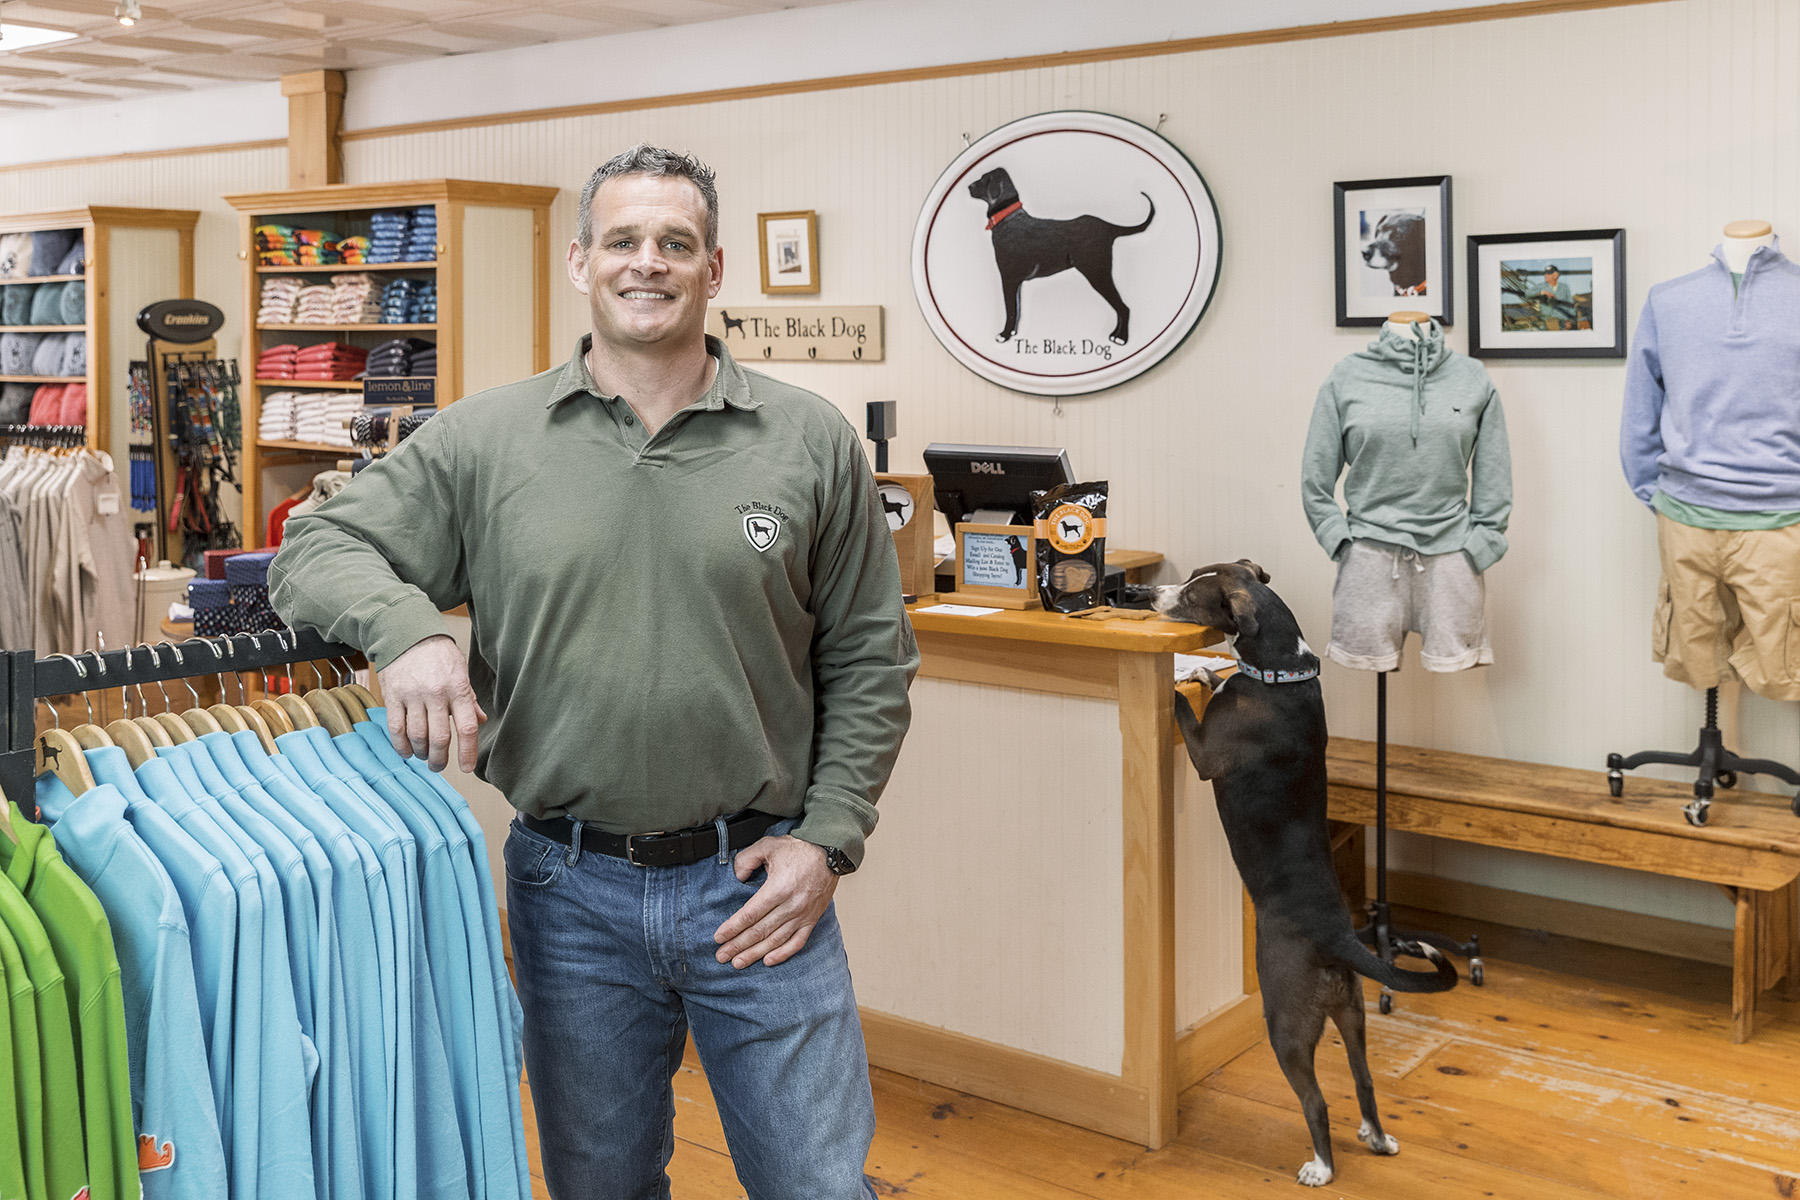 Environmental portrait of small business owner for Cape Cod 5 Bank Annual Report by corporate photographer Kevin Brusie